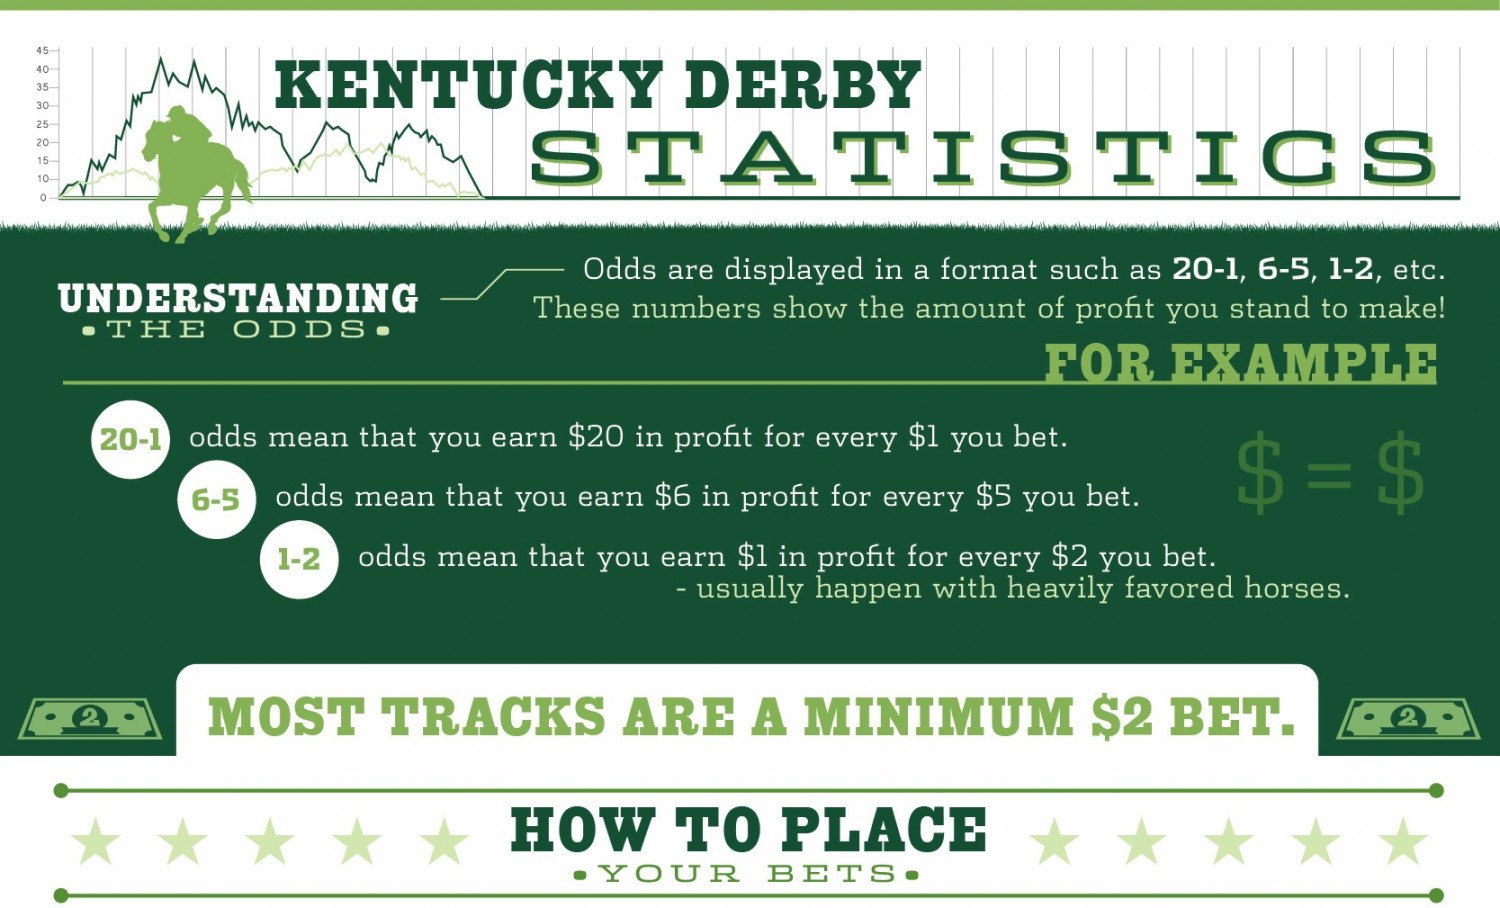 Kentucky Derby Statistics Infographic